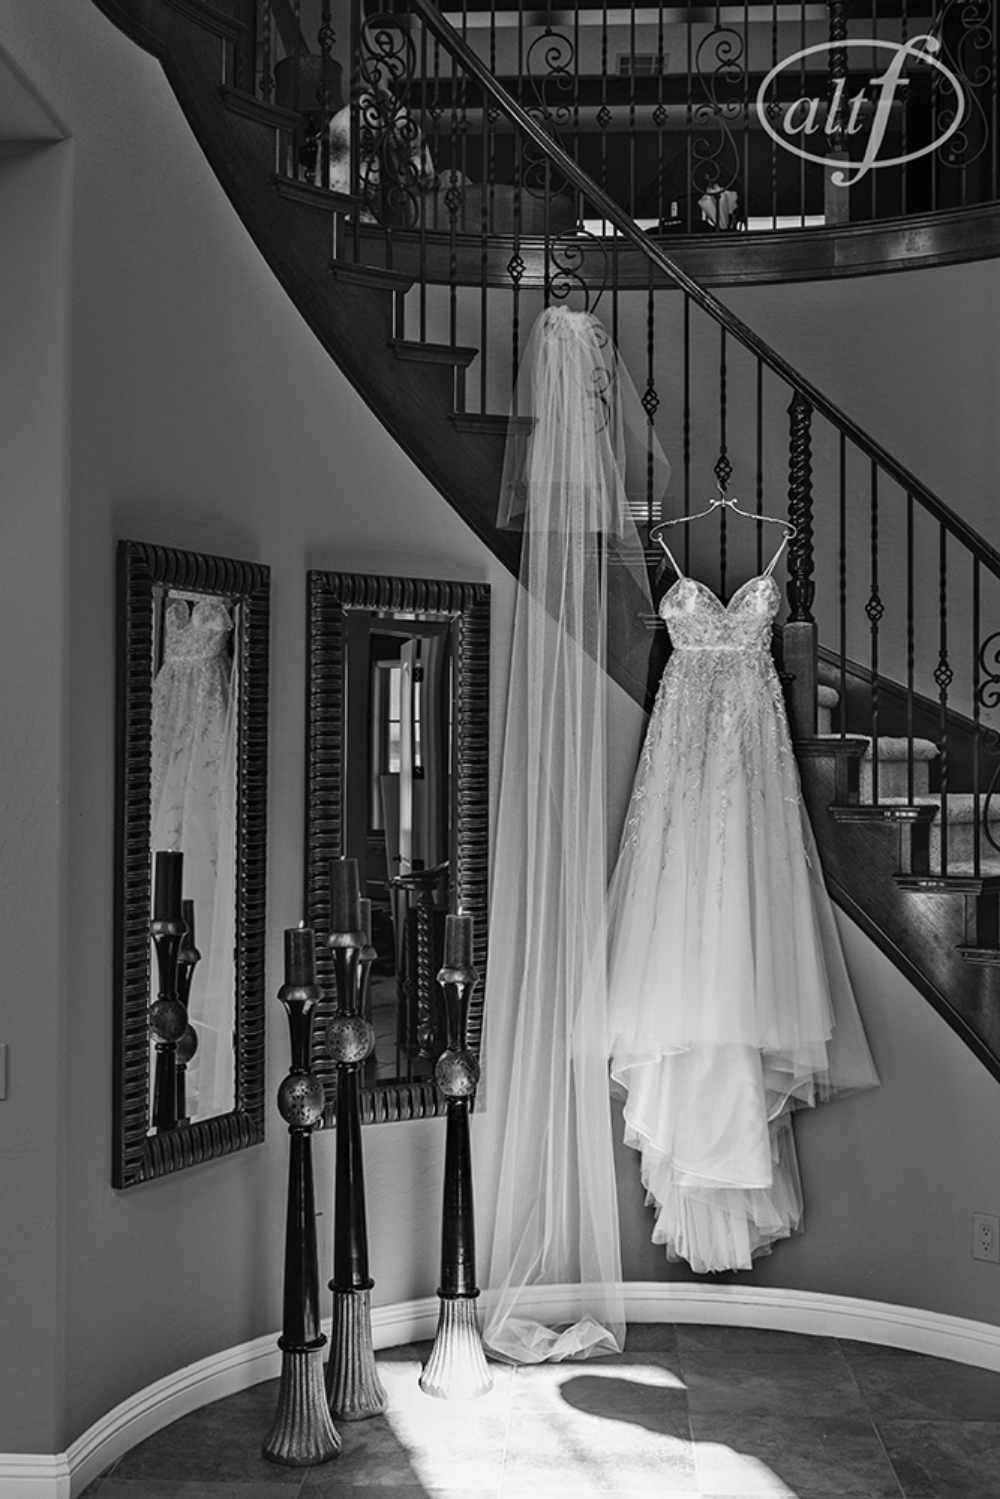 Embroidered Wedding Gown by Lazaro. Veil and Salon services from Couture Bride.  Las Vegas Wedding Planner Andrea Eppolito. Image by Altf.com.